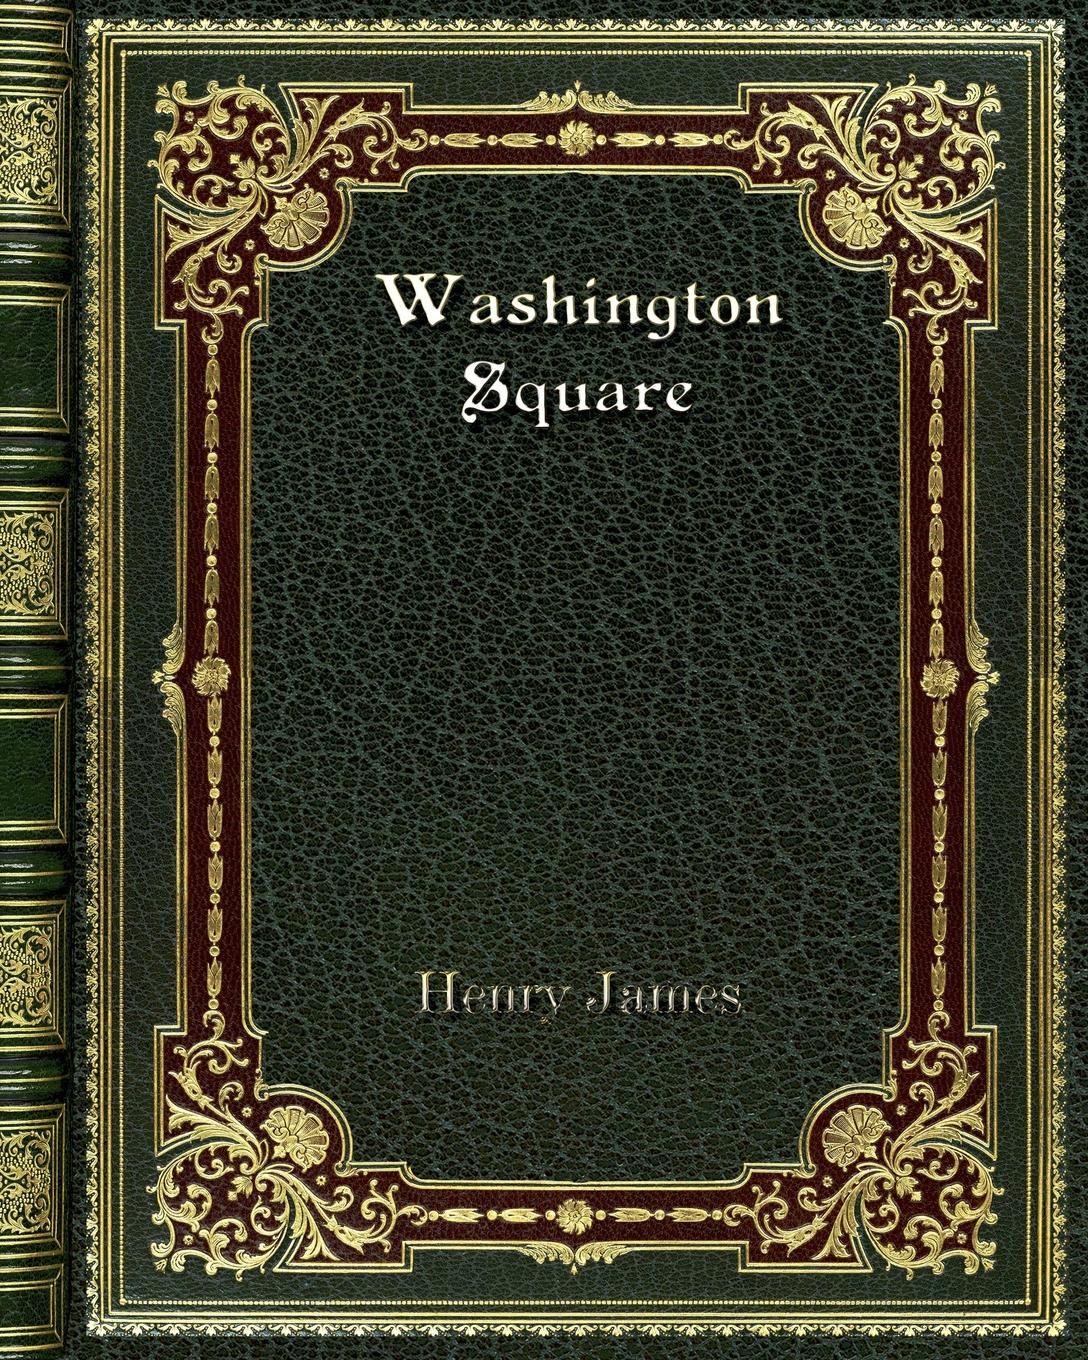 Henry James Washington Square henry james confidence